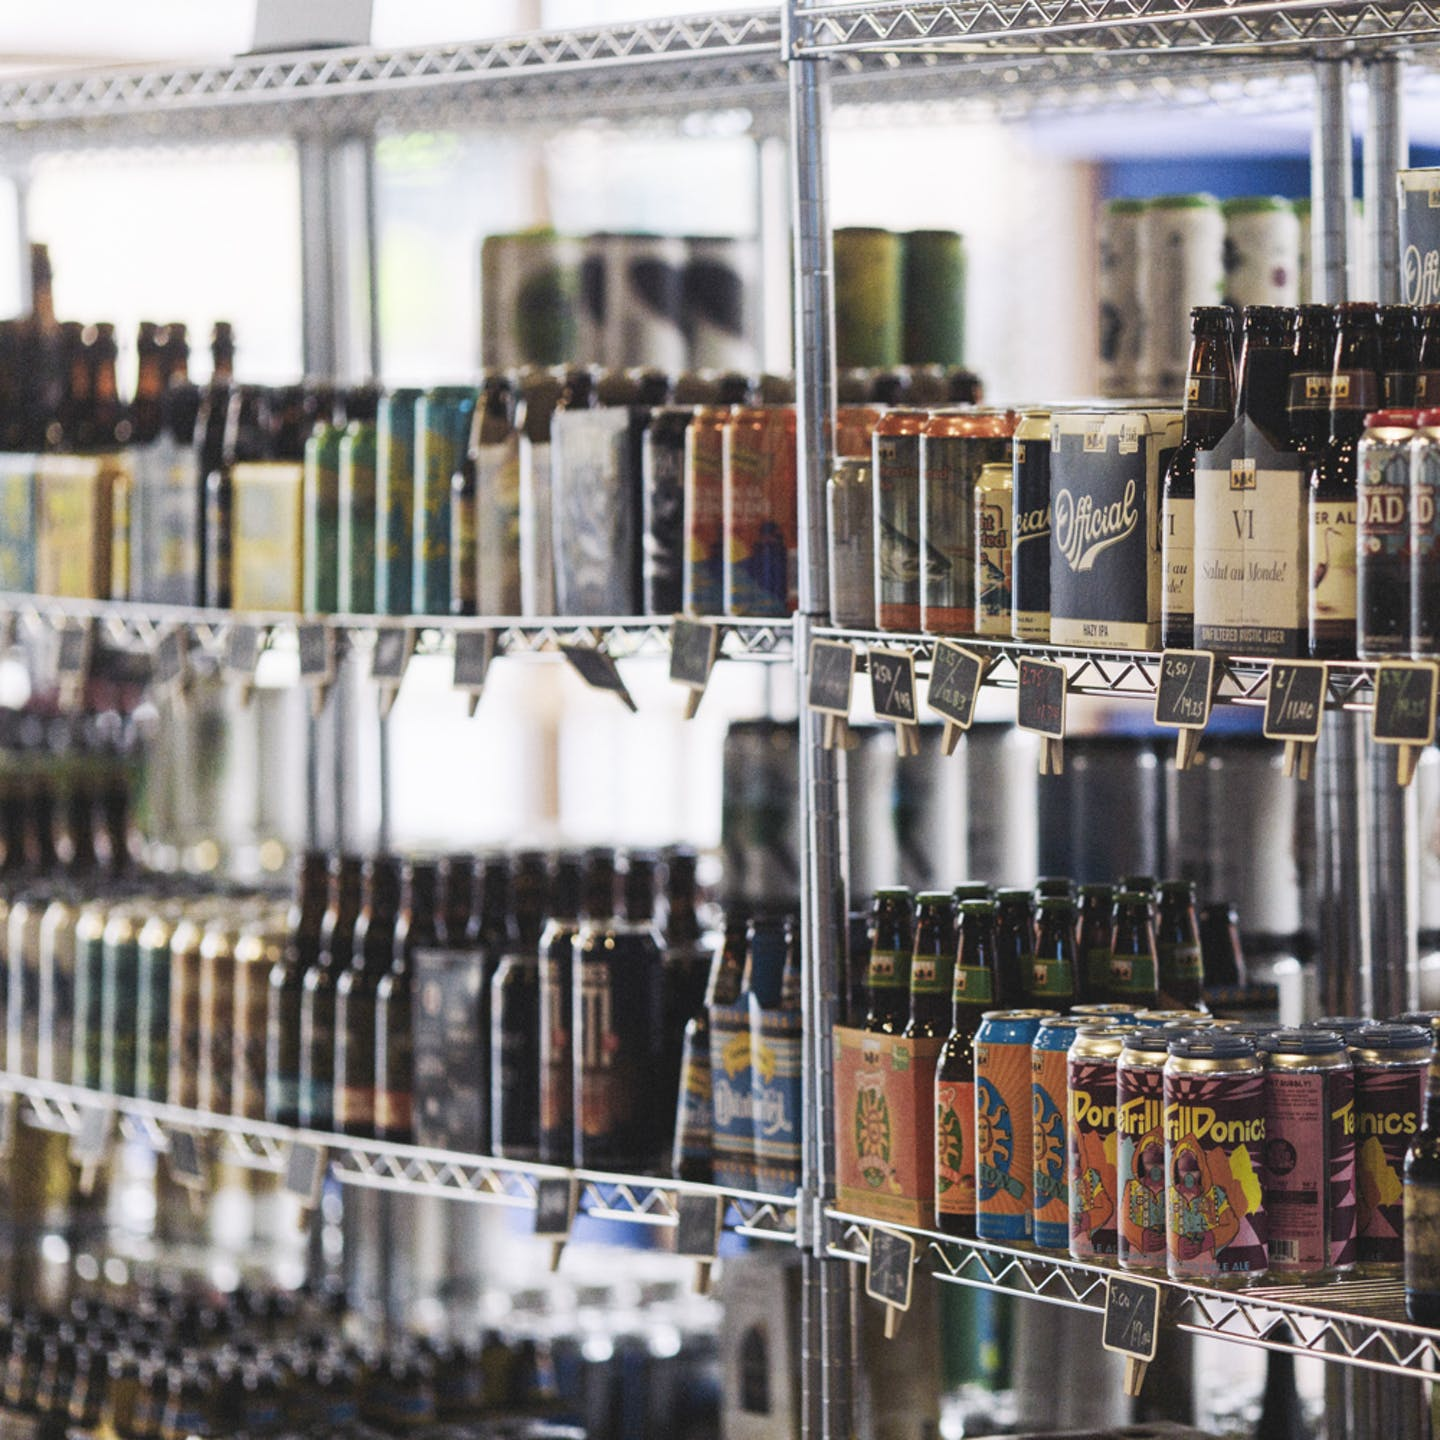 The available beer